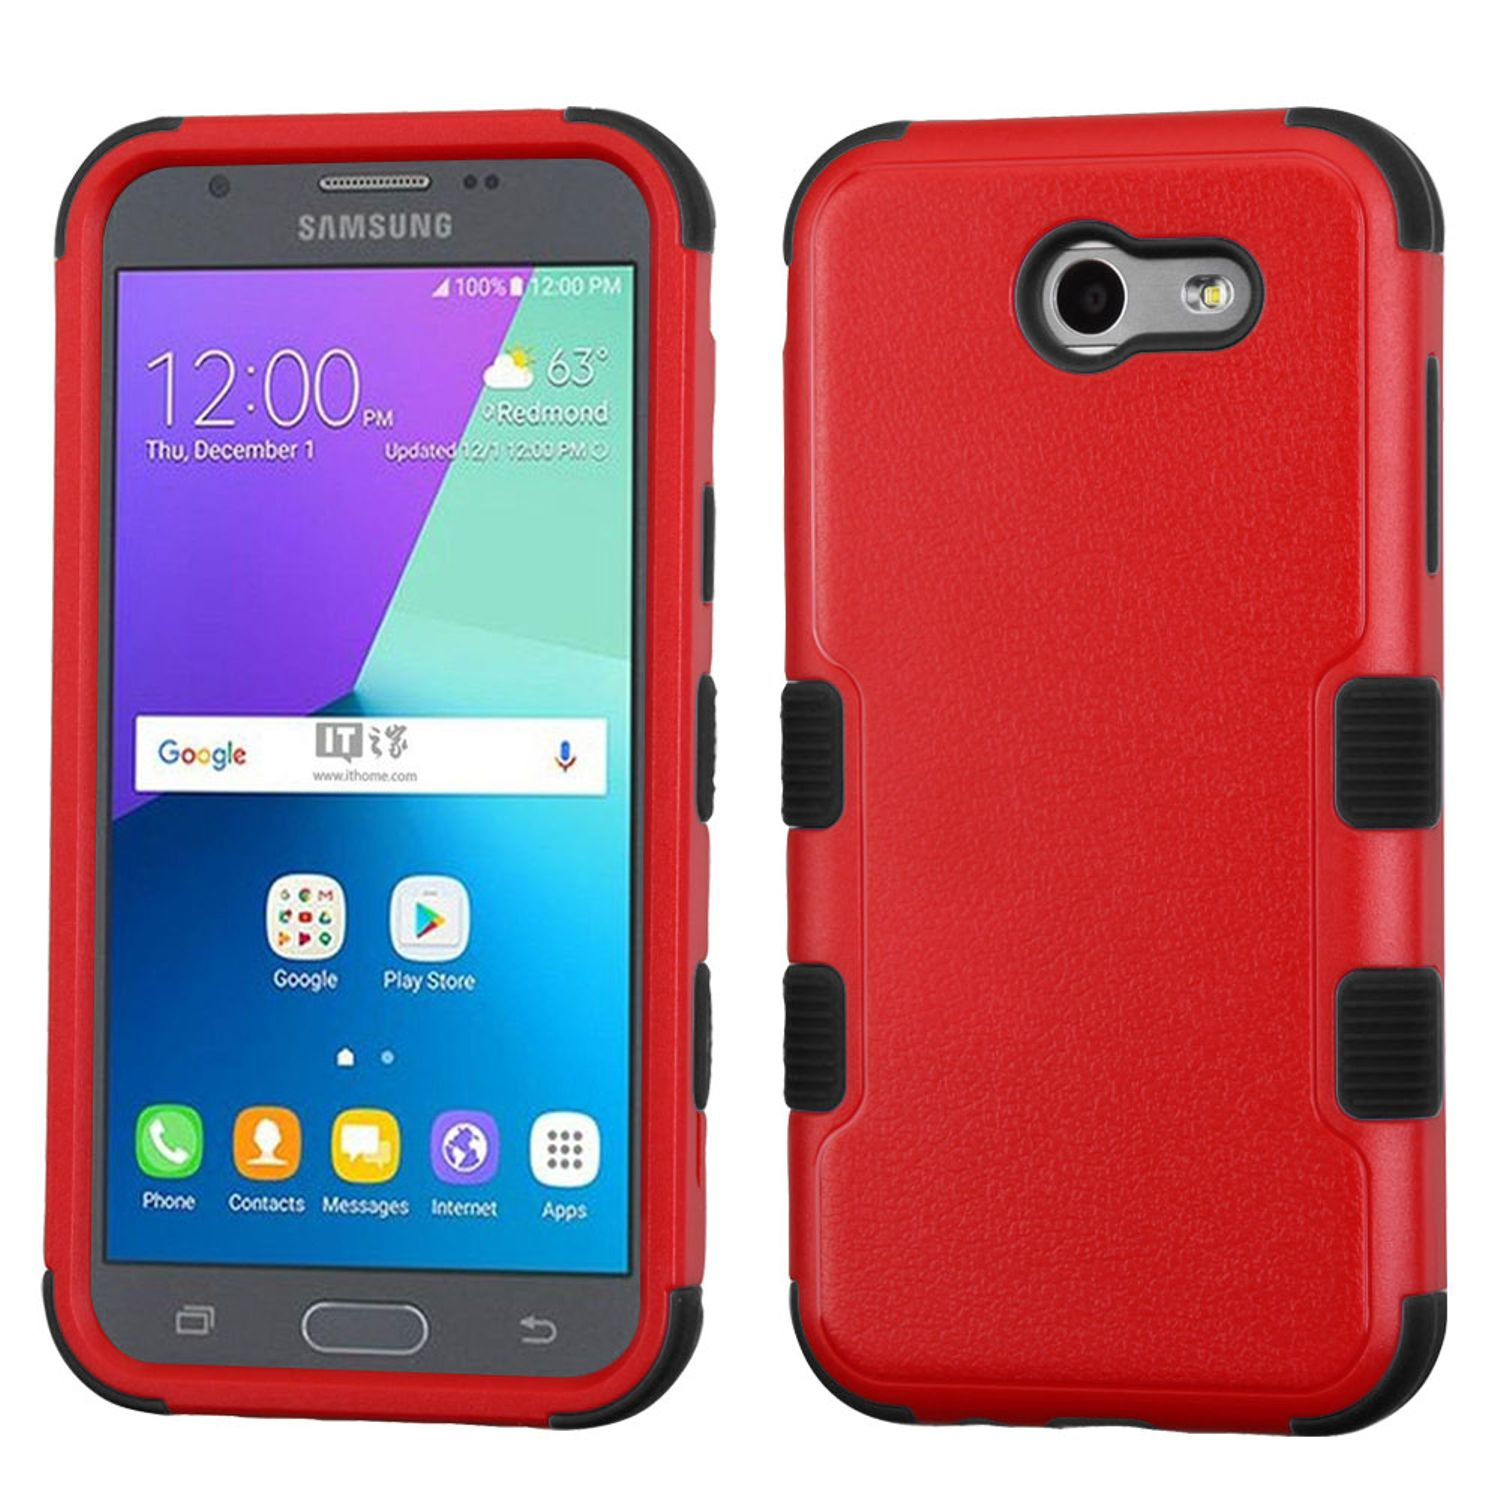 Samsung Galaxy J3 2017 Case Galaxy J3 Luna Pro case by Insten Tuff Dual Layer [Shock Absorbing] Hybrid Rubberized Hard Plastic/Silicone Case Cover For Samsung Galaxy J3 Luna Pro J3 Emerge J3 2017